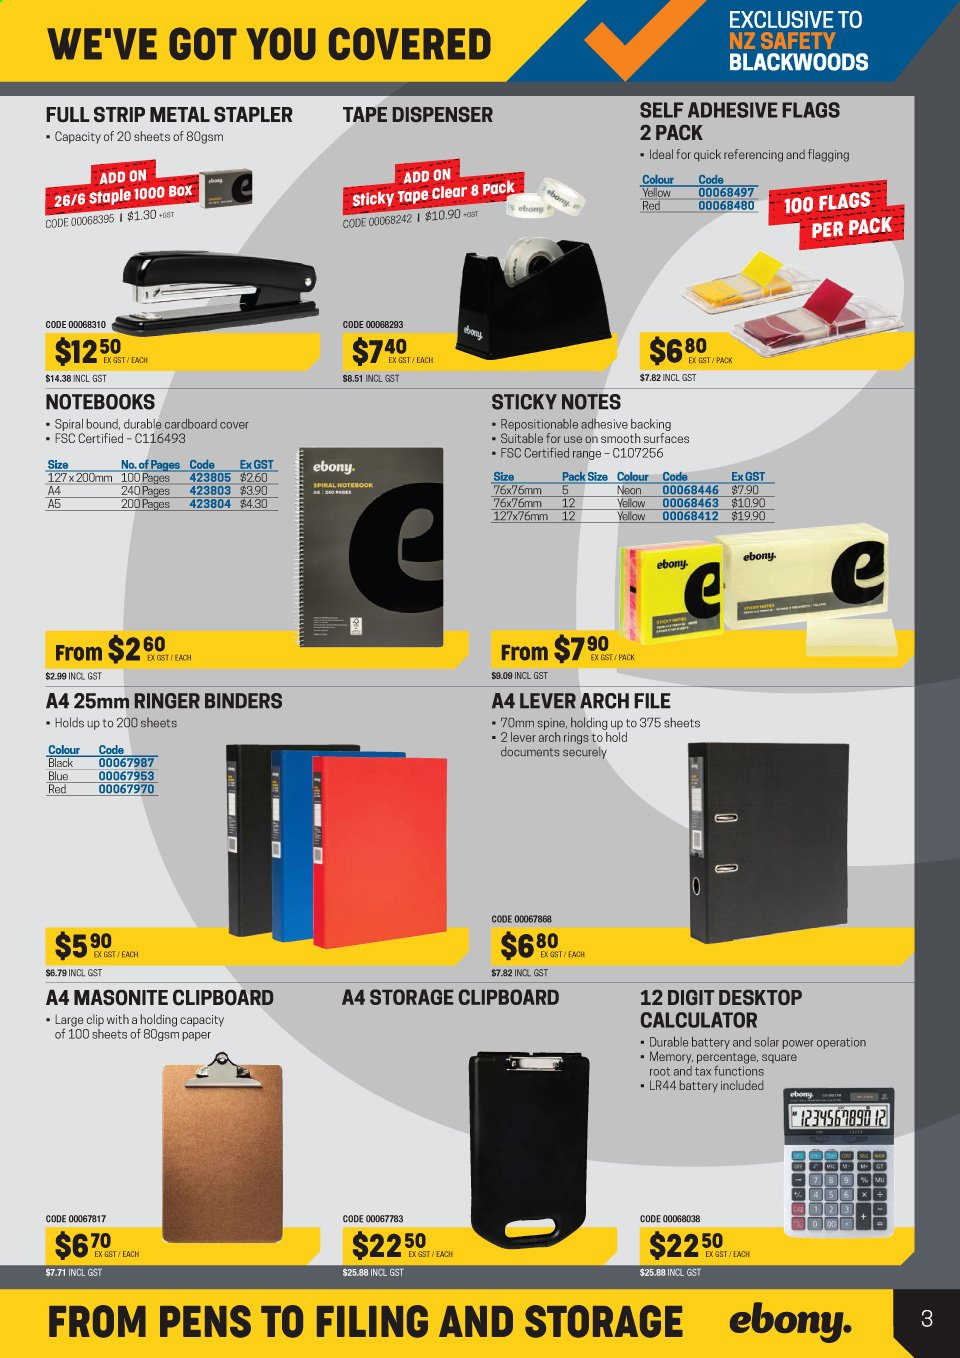 NZ Safety Blackwoods mailer - 01.07.2019 - 31.07.2019 - Sales products - battery, dispenser, tape, paper, stapler, lever arch. Page 44.